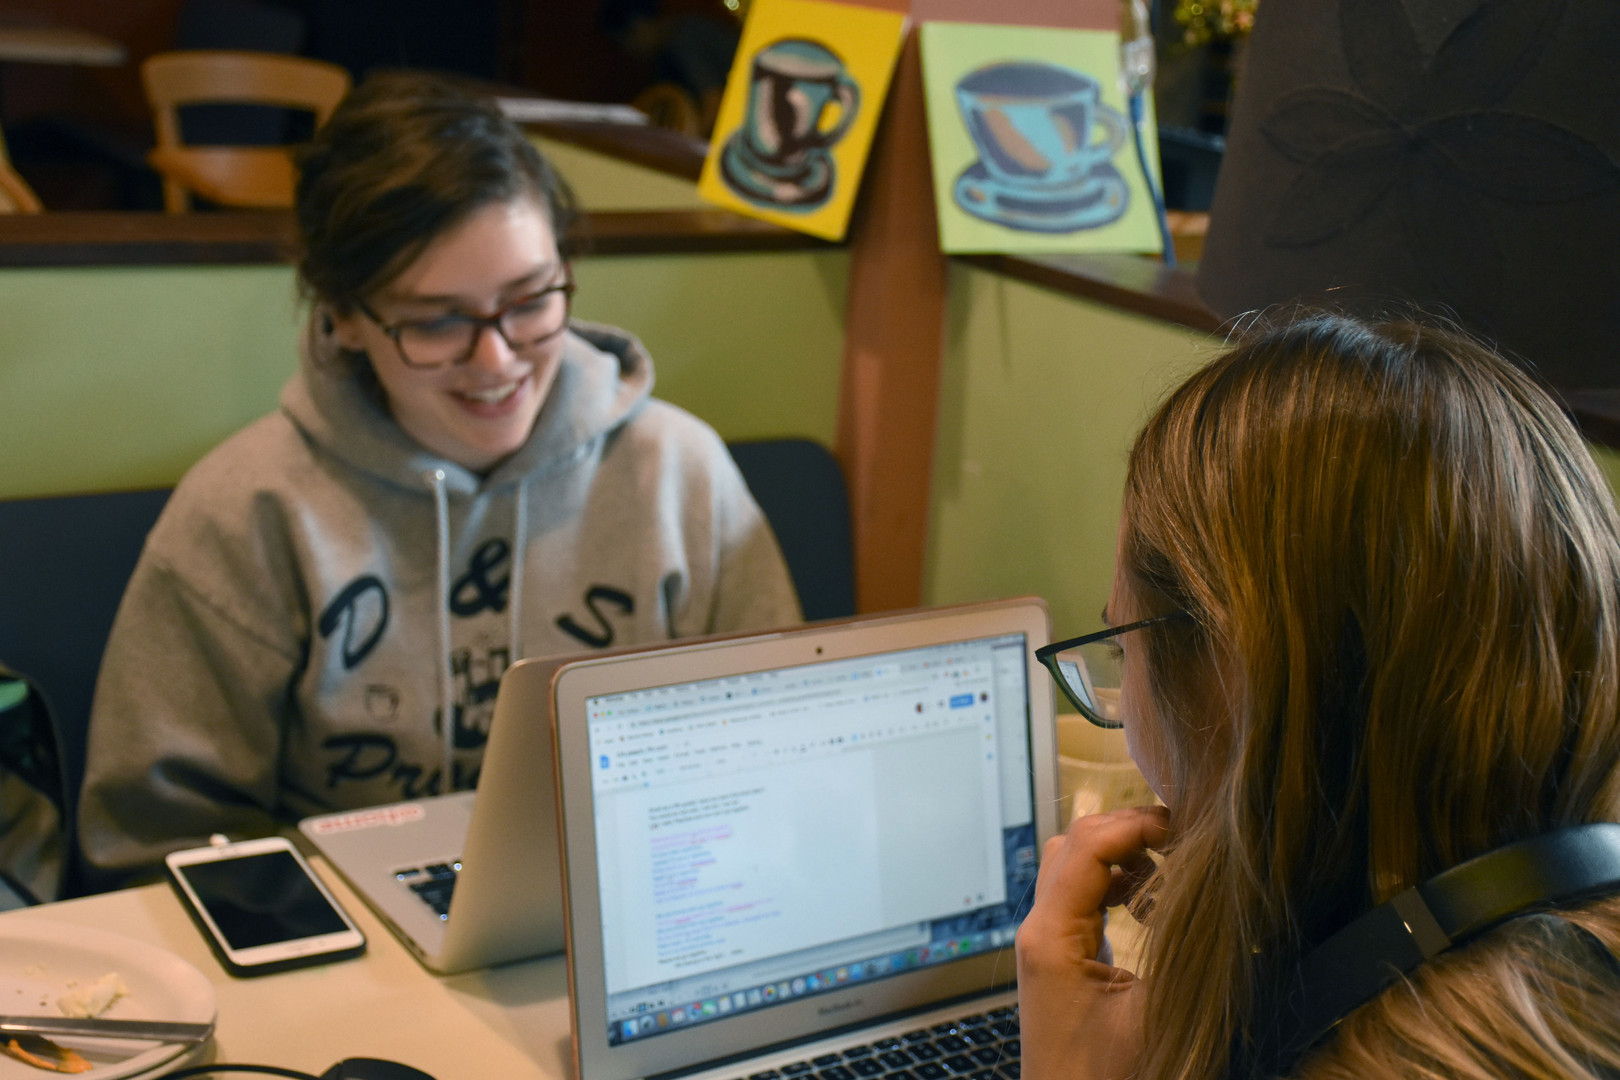 Julie Larsen works on lyrics for comedic music video with her Derby co-founder and Second Floor president, Kellie Hahn, on Sunday, March 24, 2019 in Webster's Bookstore Cafe. In March of 2018, Derby, Penn State's only all-female comedy troupe, was founded by Julie Larsen, Karina Ciocca, and Kellie Hahn – three women who had felt the isolating effects of being a female comedian in State College.